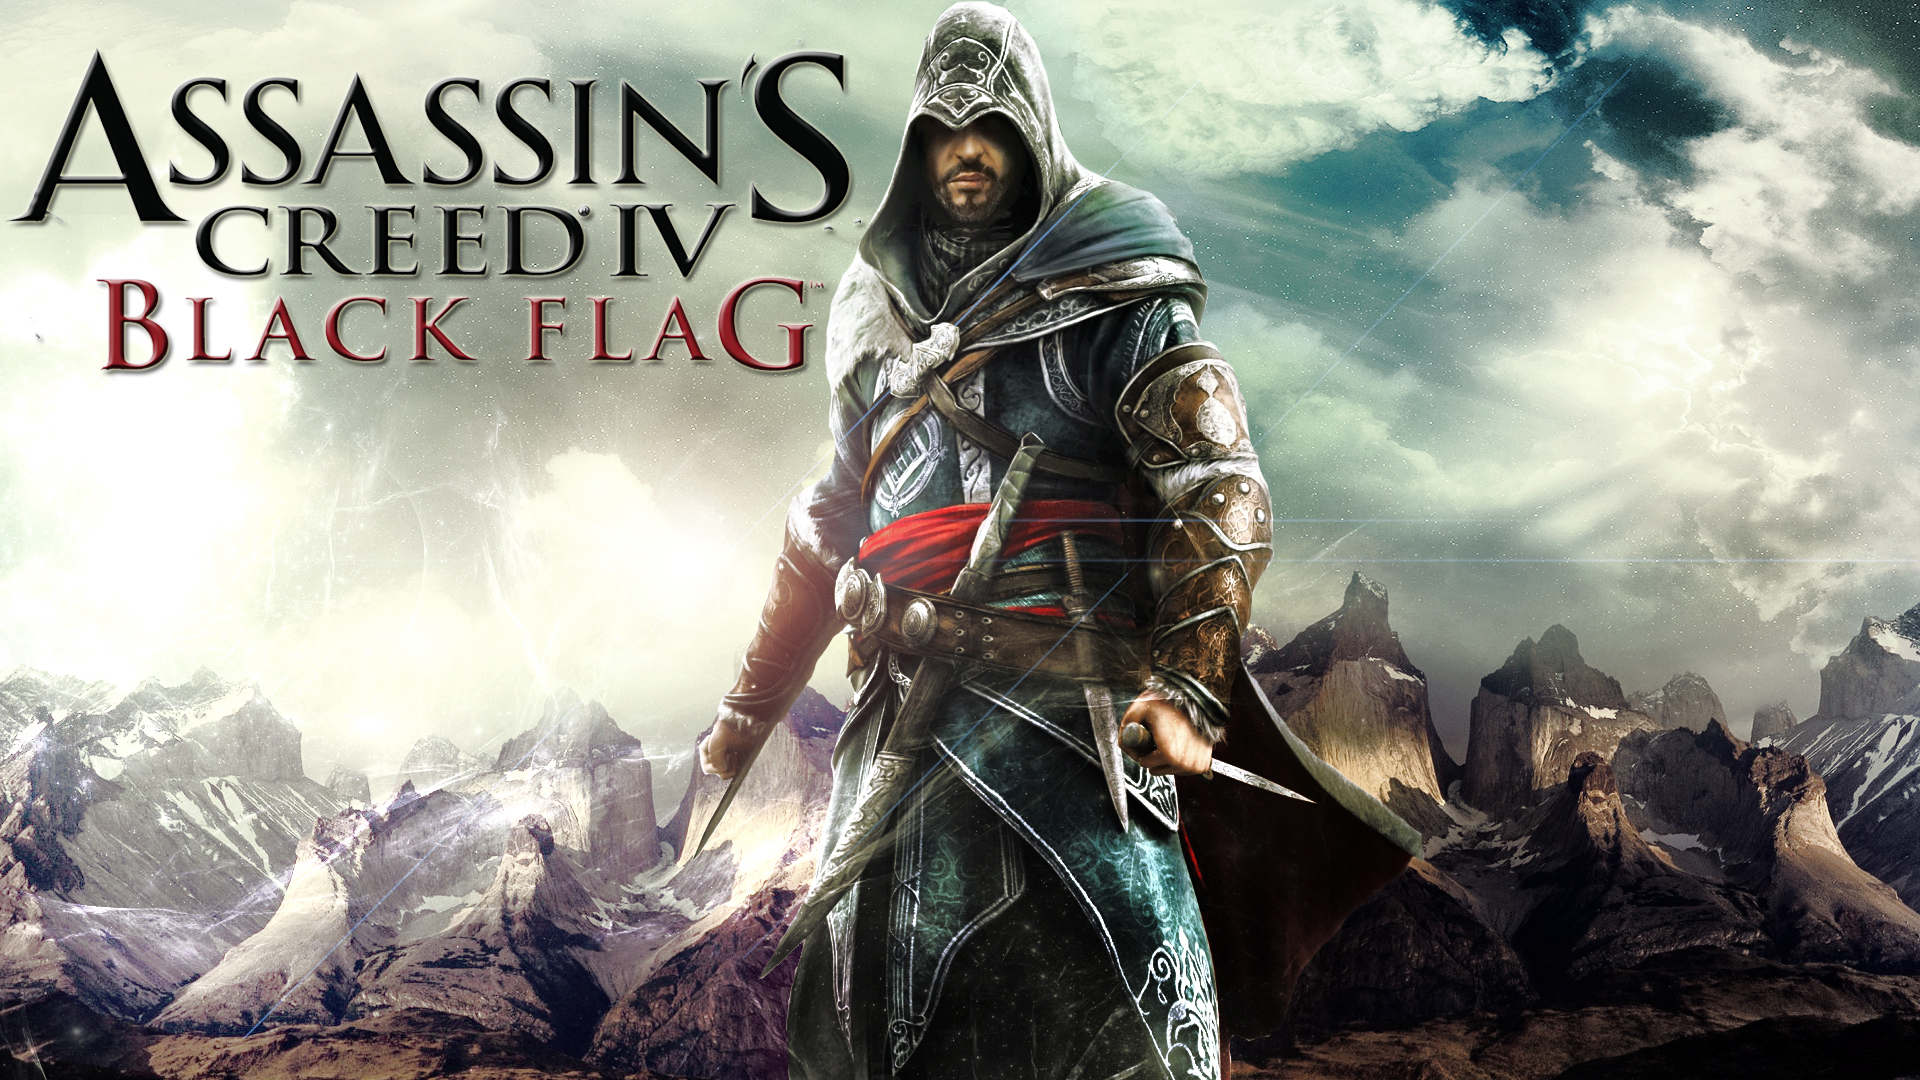 Assassins Creed 4 backgrounds High Quality WallpapersWallpaper 1920x1080